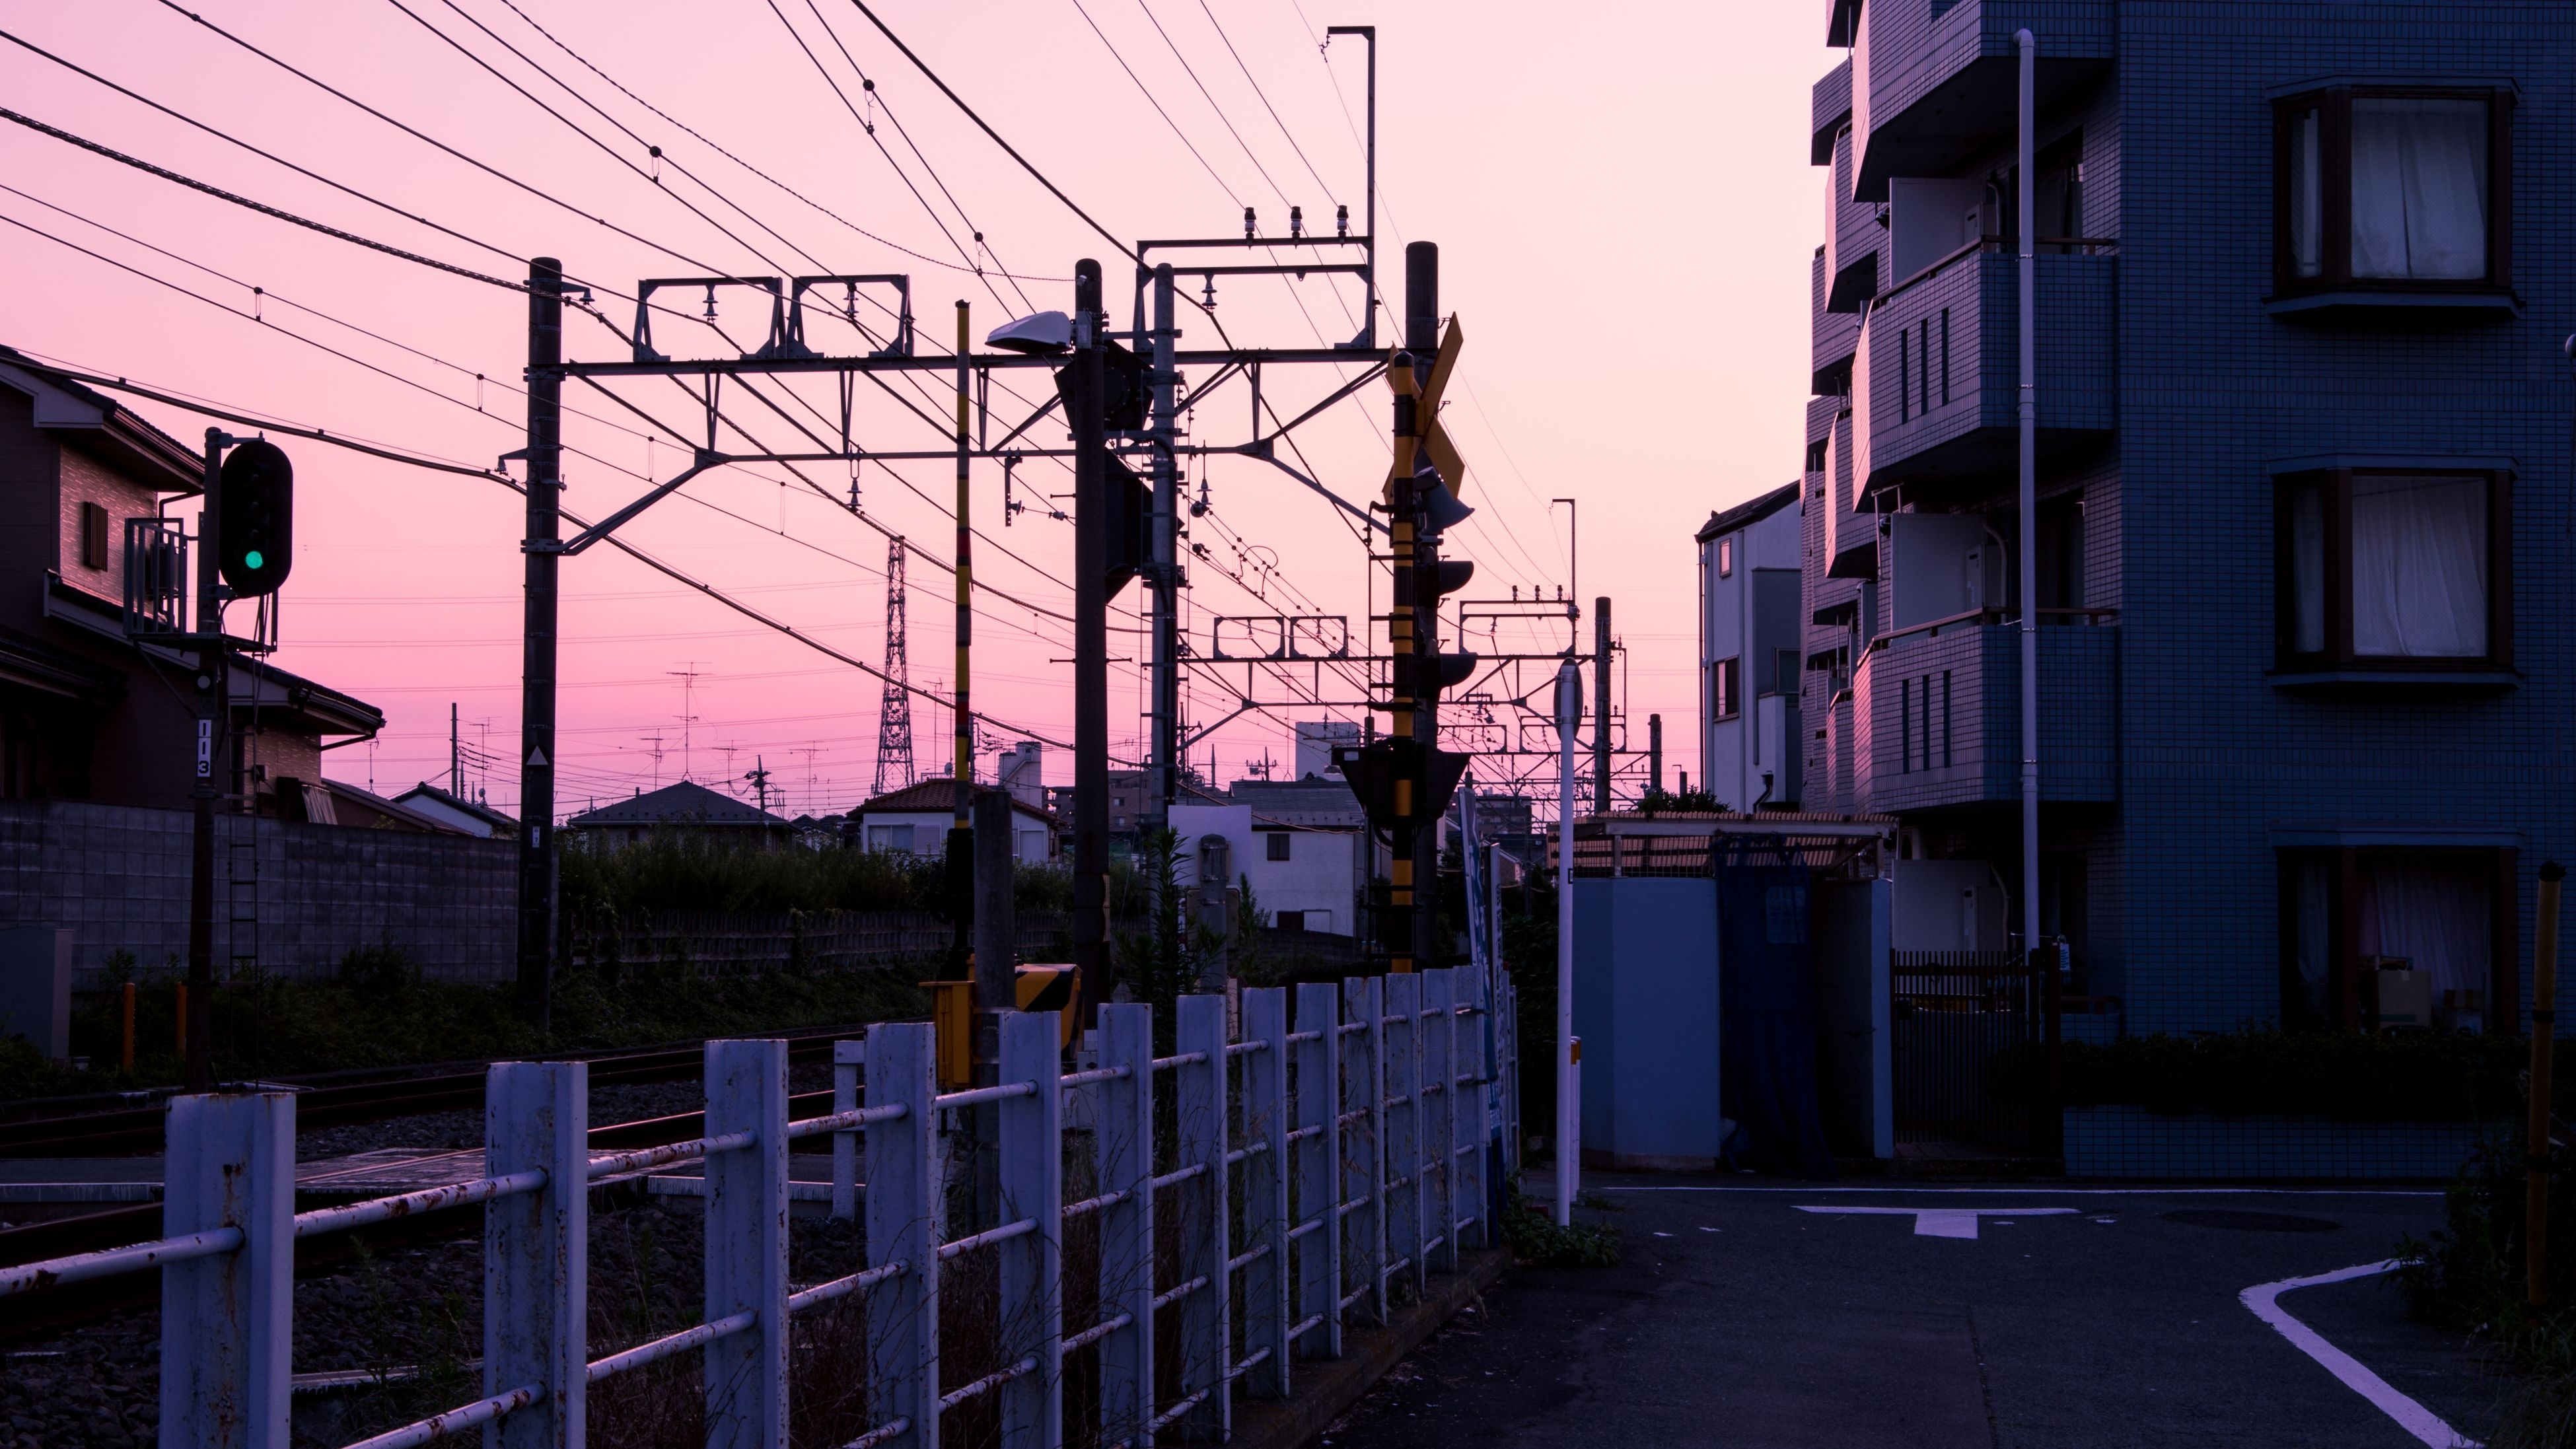 building exterior, architecture, built structure, power line, electricity pylon, cable, sky, electricity, transportation, city, street, power supply, street light, fuel and power generation, residential structure, residential building, building, the way forward, outdoors, connection